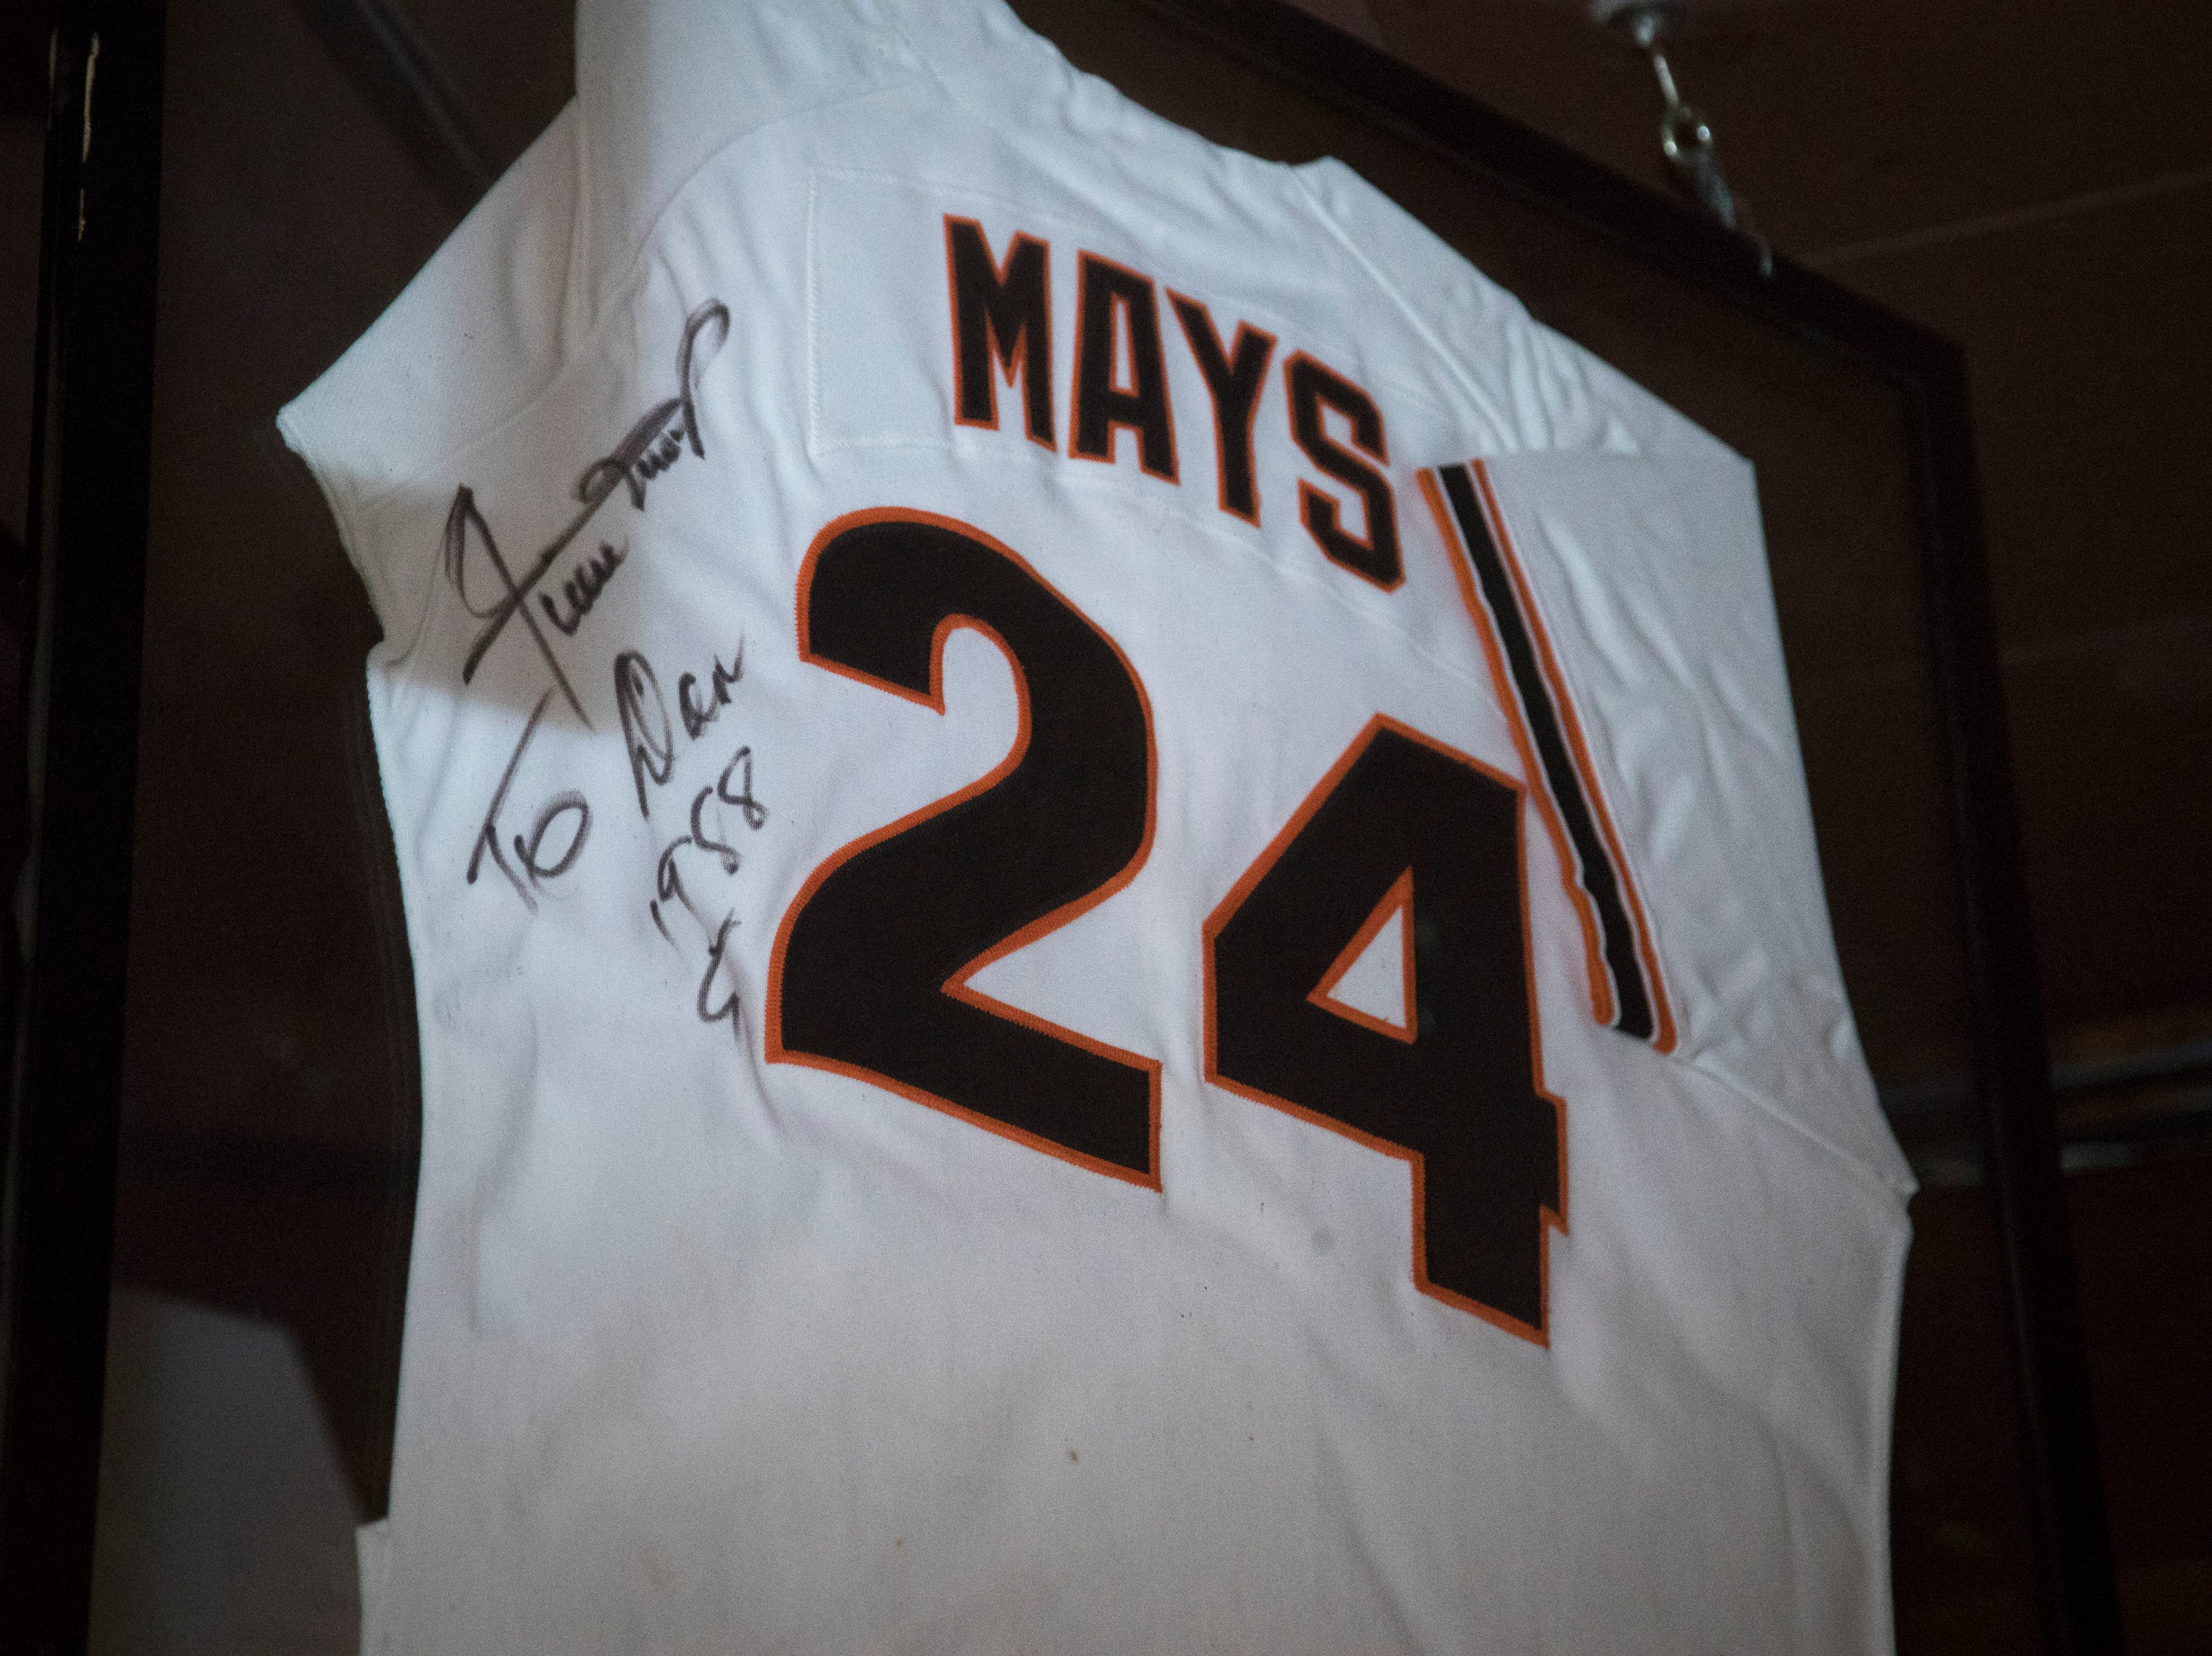 Willie Mays' jersey is seen Feb. 27, 2019, at Don & Charlie's, 7501 E. Camelback Road, Scottsdale.